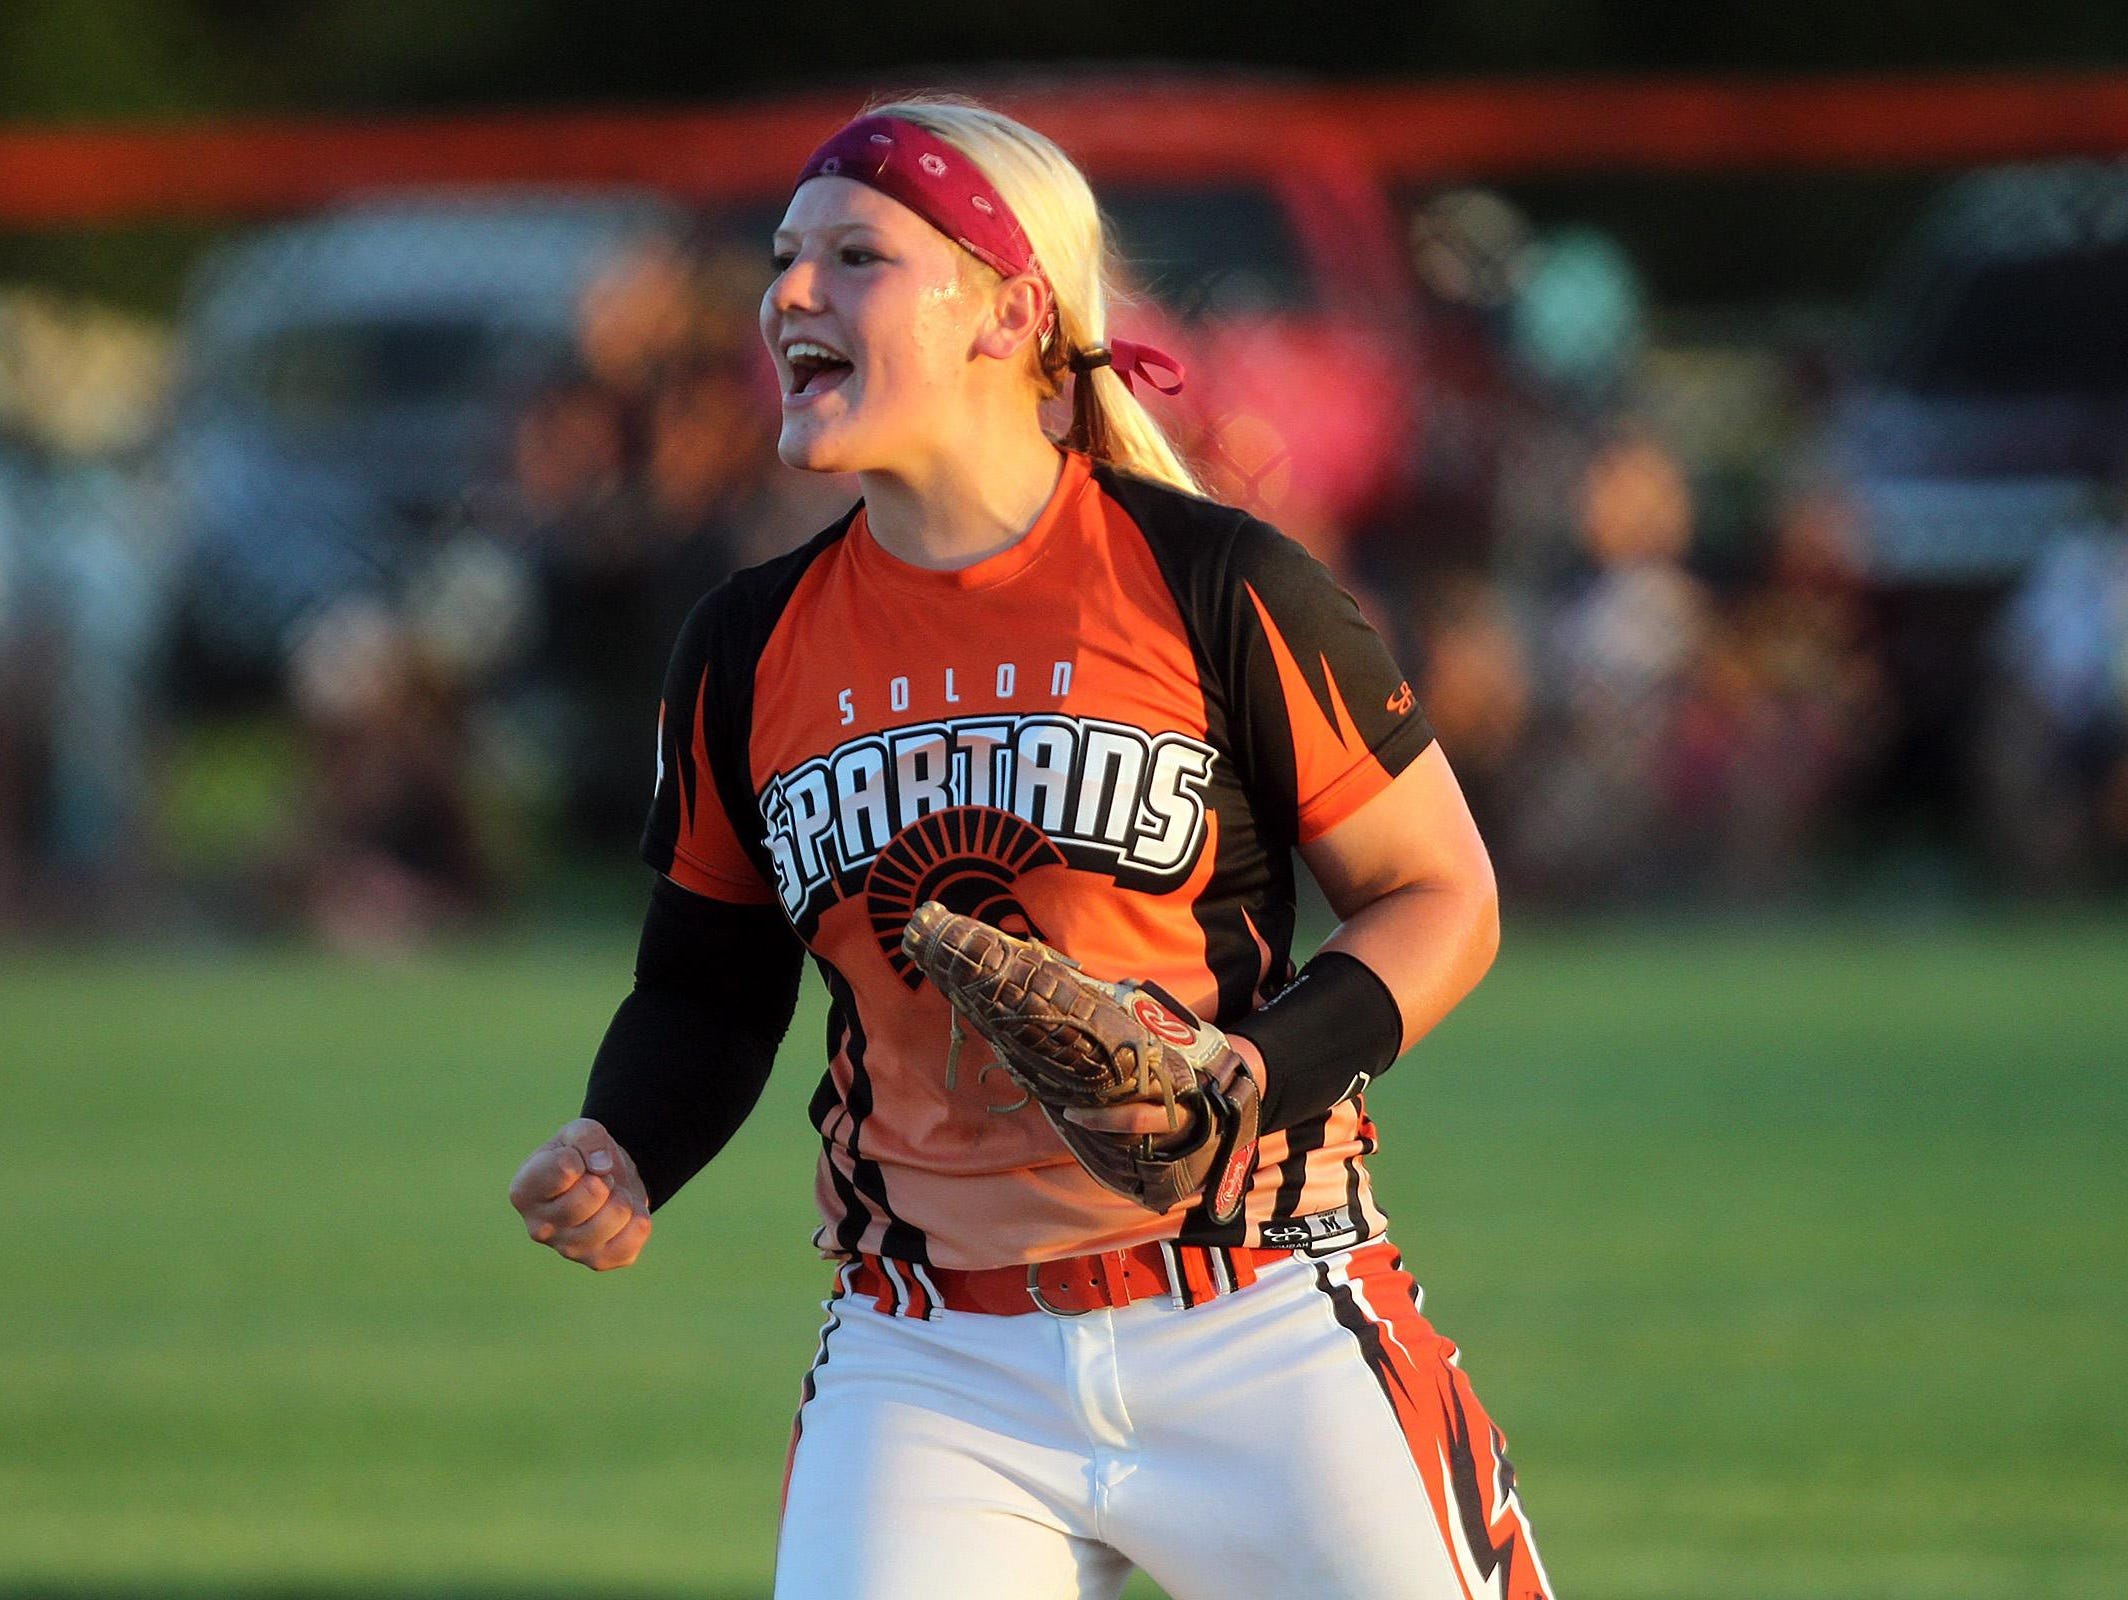 Solon's Ali Herdliska celebrates a strikeout during the Spartans' Class 3A regional championship against PCM, Monroe in Grinnell on Monday, July 13, 2015. David Scrivner / Iowa City Press-Citizen